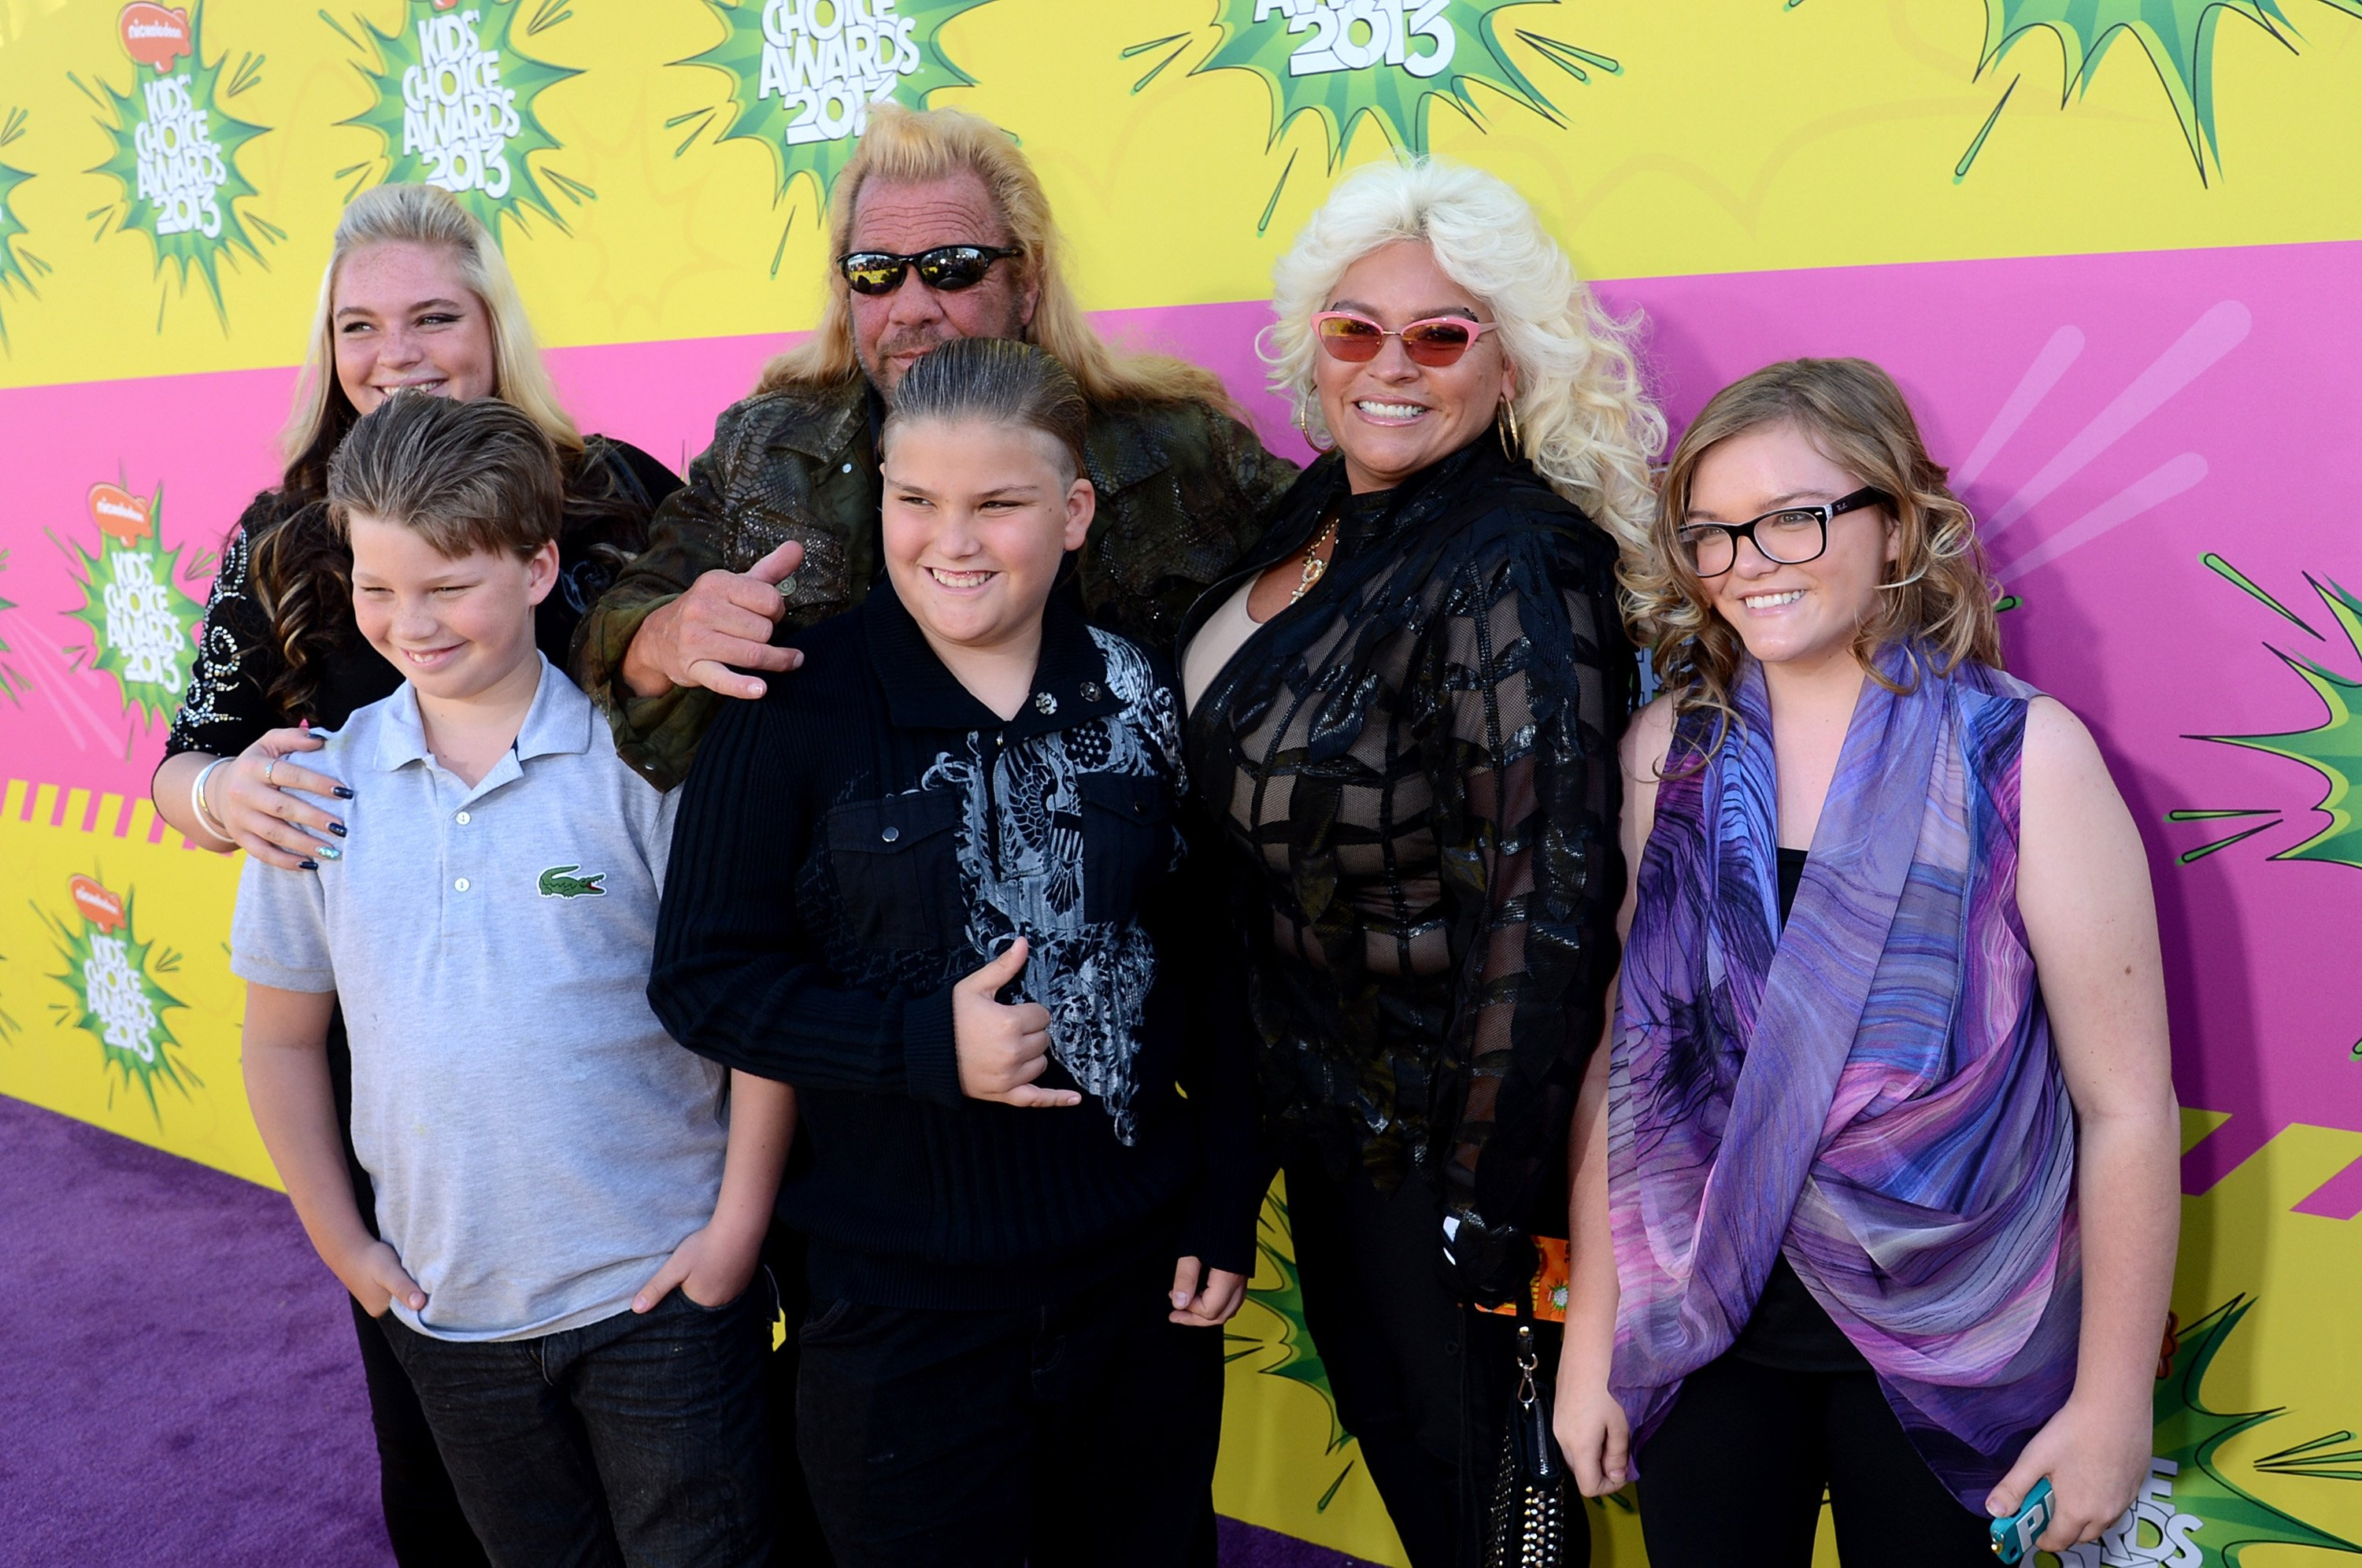 TV personality Duane 'Dog' Chapman (C) and family arrive Nickelodeon's 26th Annual Kids' Choice Awards at USC Galen Center on March 23, 2013 in Los Angeles, California.| Source: Getty Images